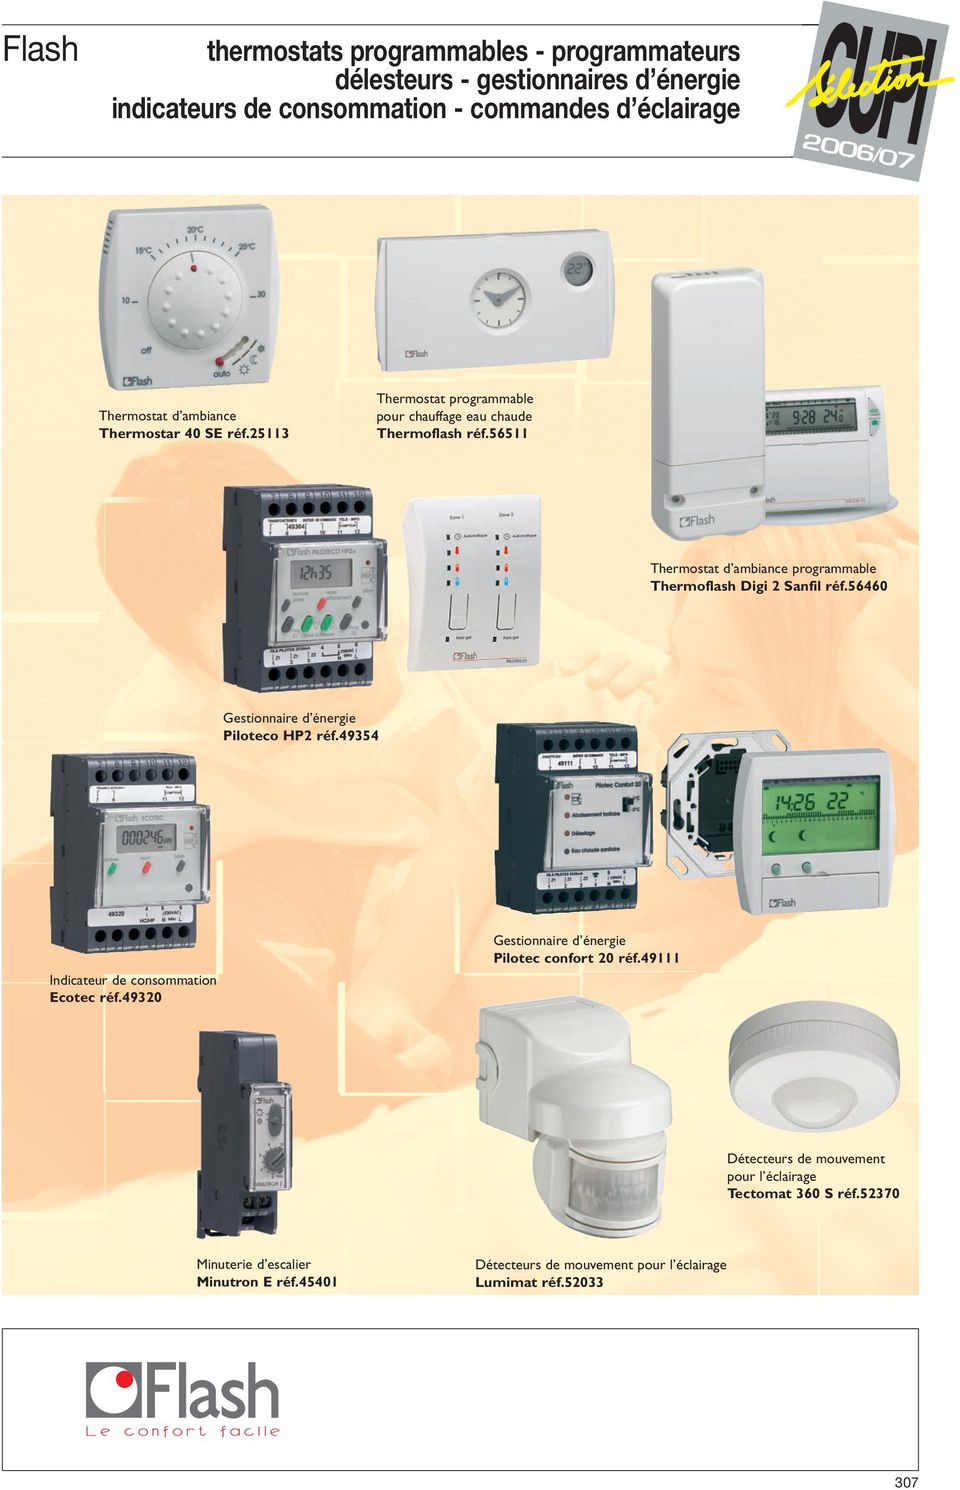 Thermostats programmables et programmateurs pdf - Robinets thermostatiques programmables ...